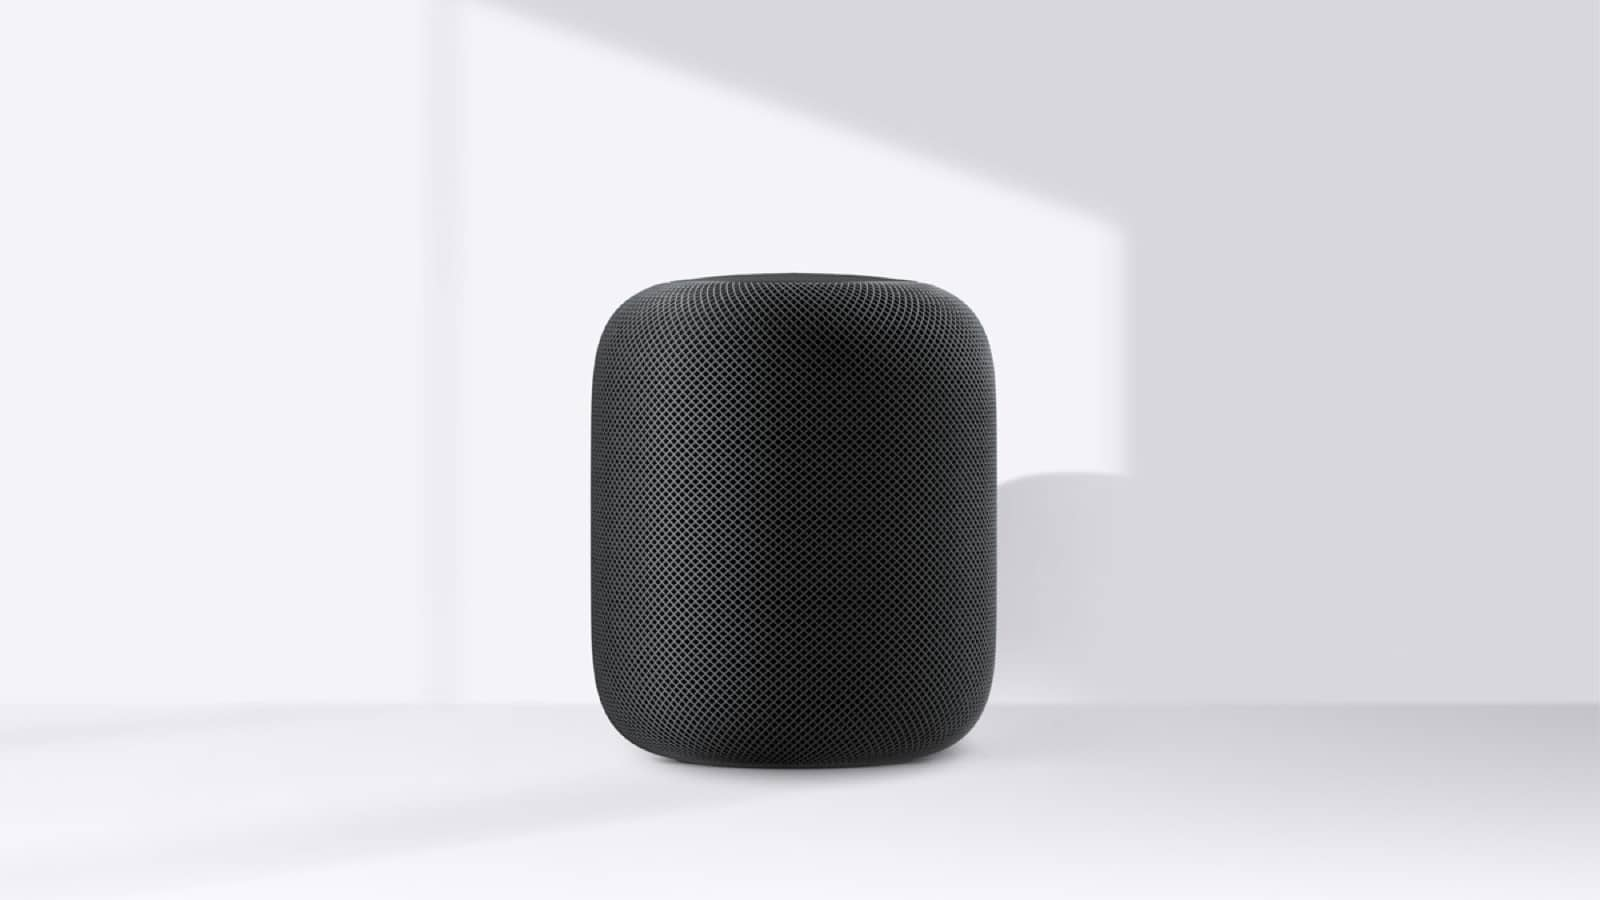 Image of black HomePod. At launch the HomePod language settings for Siri will be English-only for now.